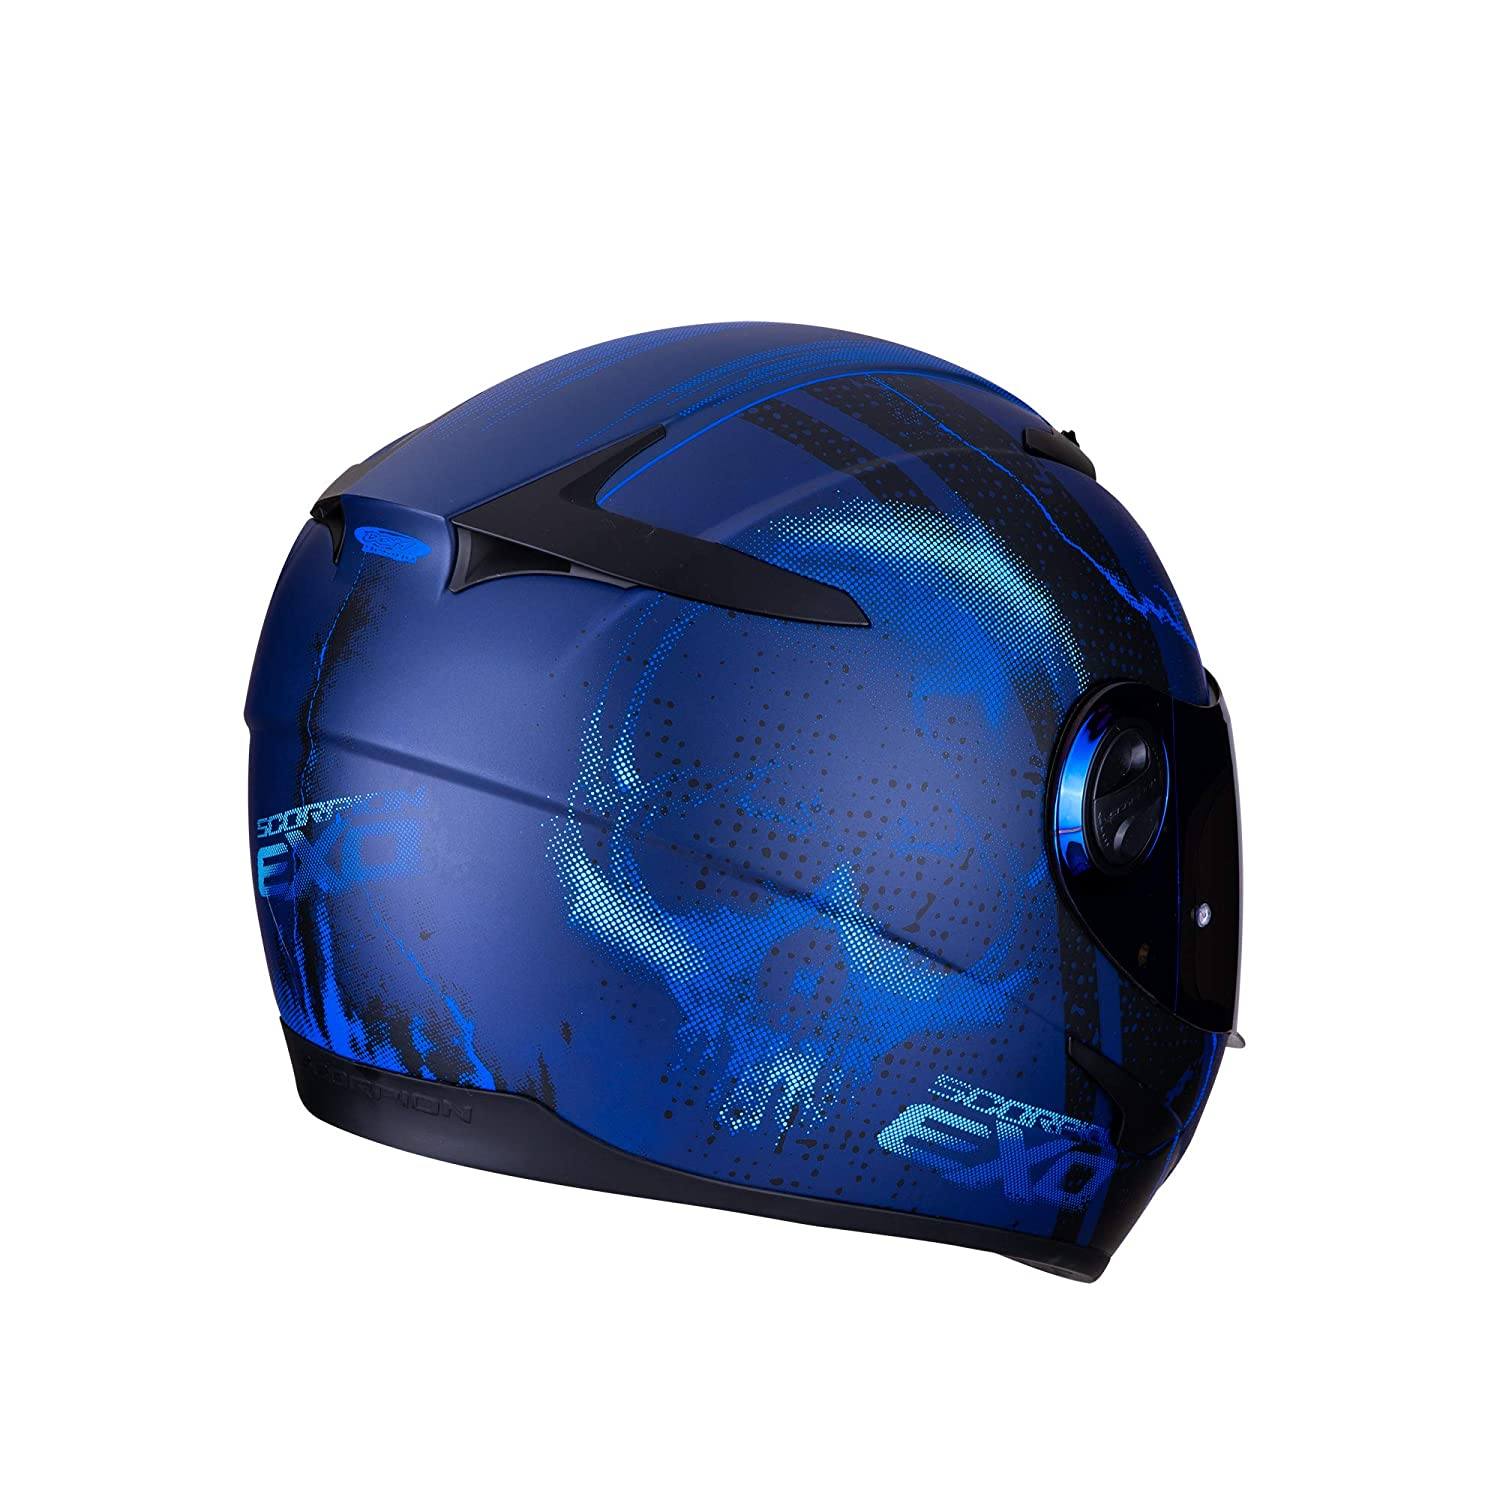 Scorpion EXO-490 DAR Matt Blue XL